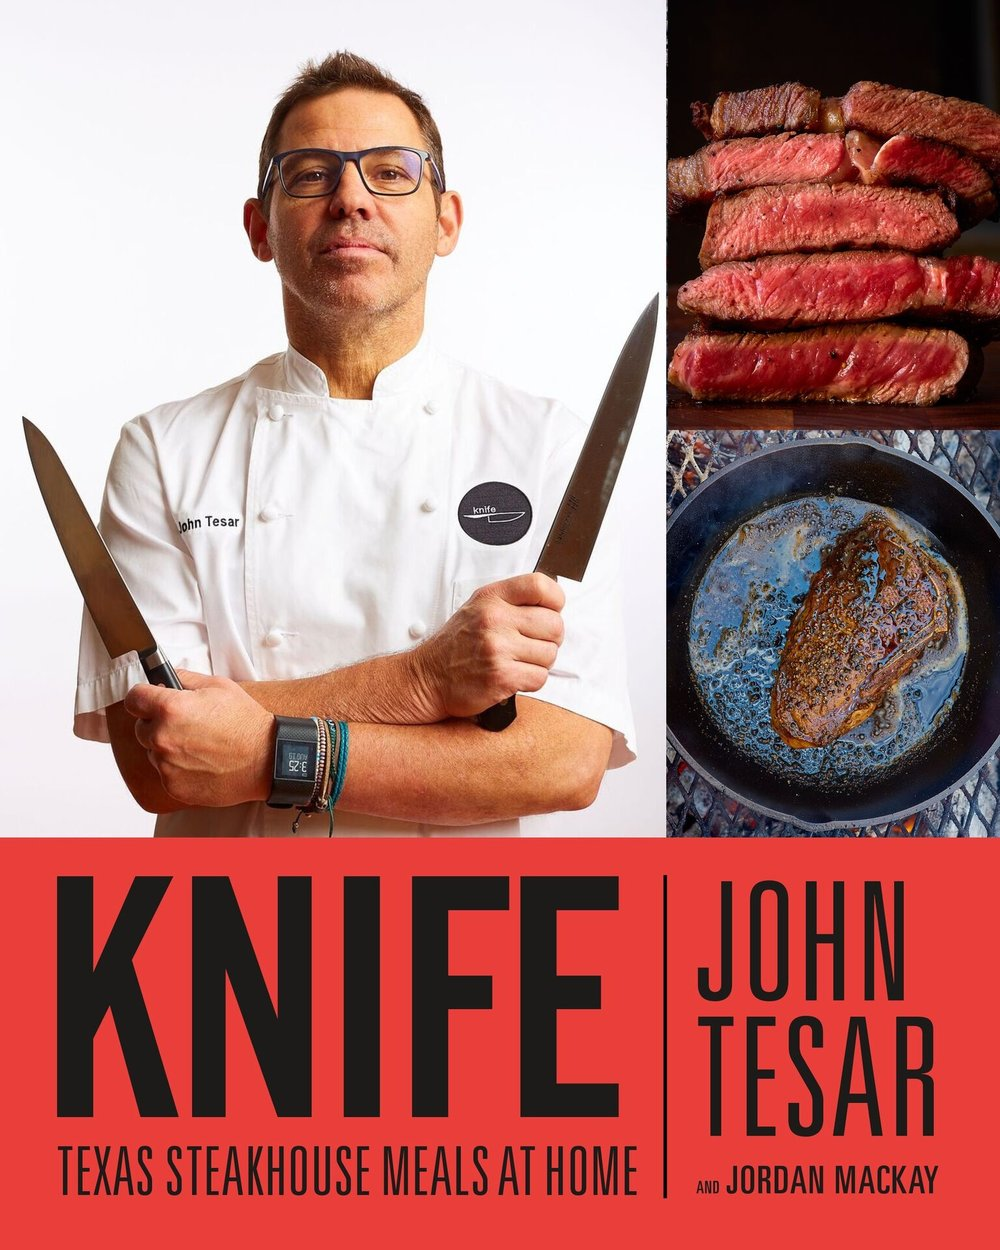 Knife: Texas Steakhouse Meals at Home is out NOW - Grab Your Copy! Photo Credit: Kevin Marple